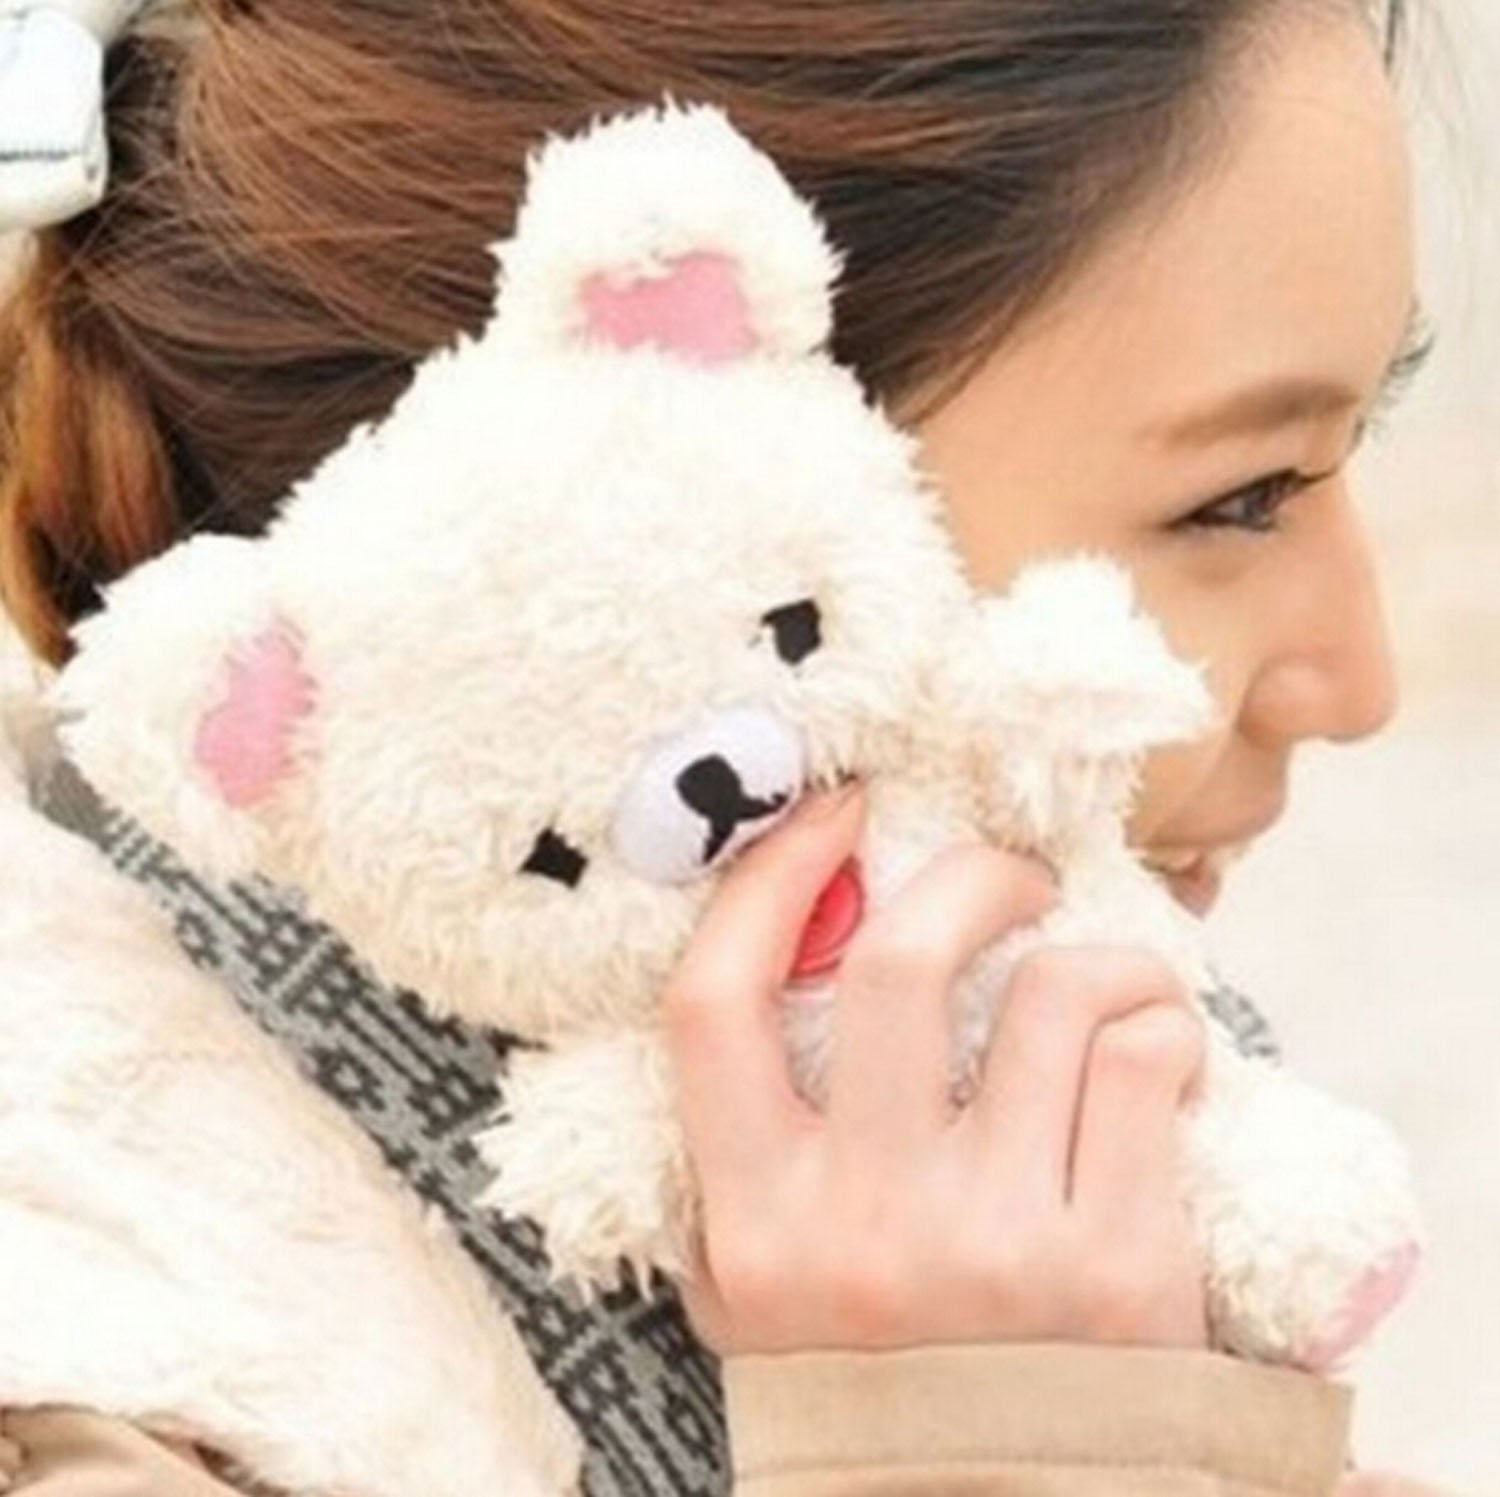 Amazon.com: Iphone 7 Case,iPhone 8 Case,Emilys fashion style New Cute 3D Lovely Teddy Bear Doll Toy Cool Plush Fitted Back Phone case Cover for Iphone 7 ...